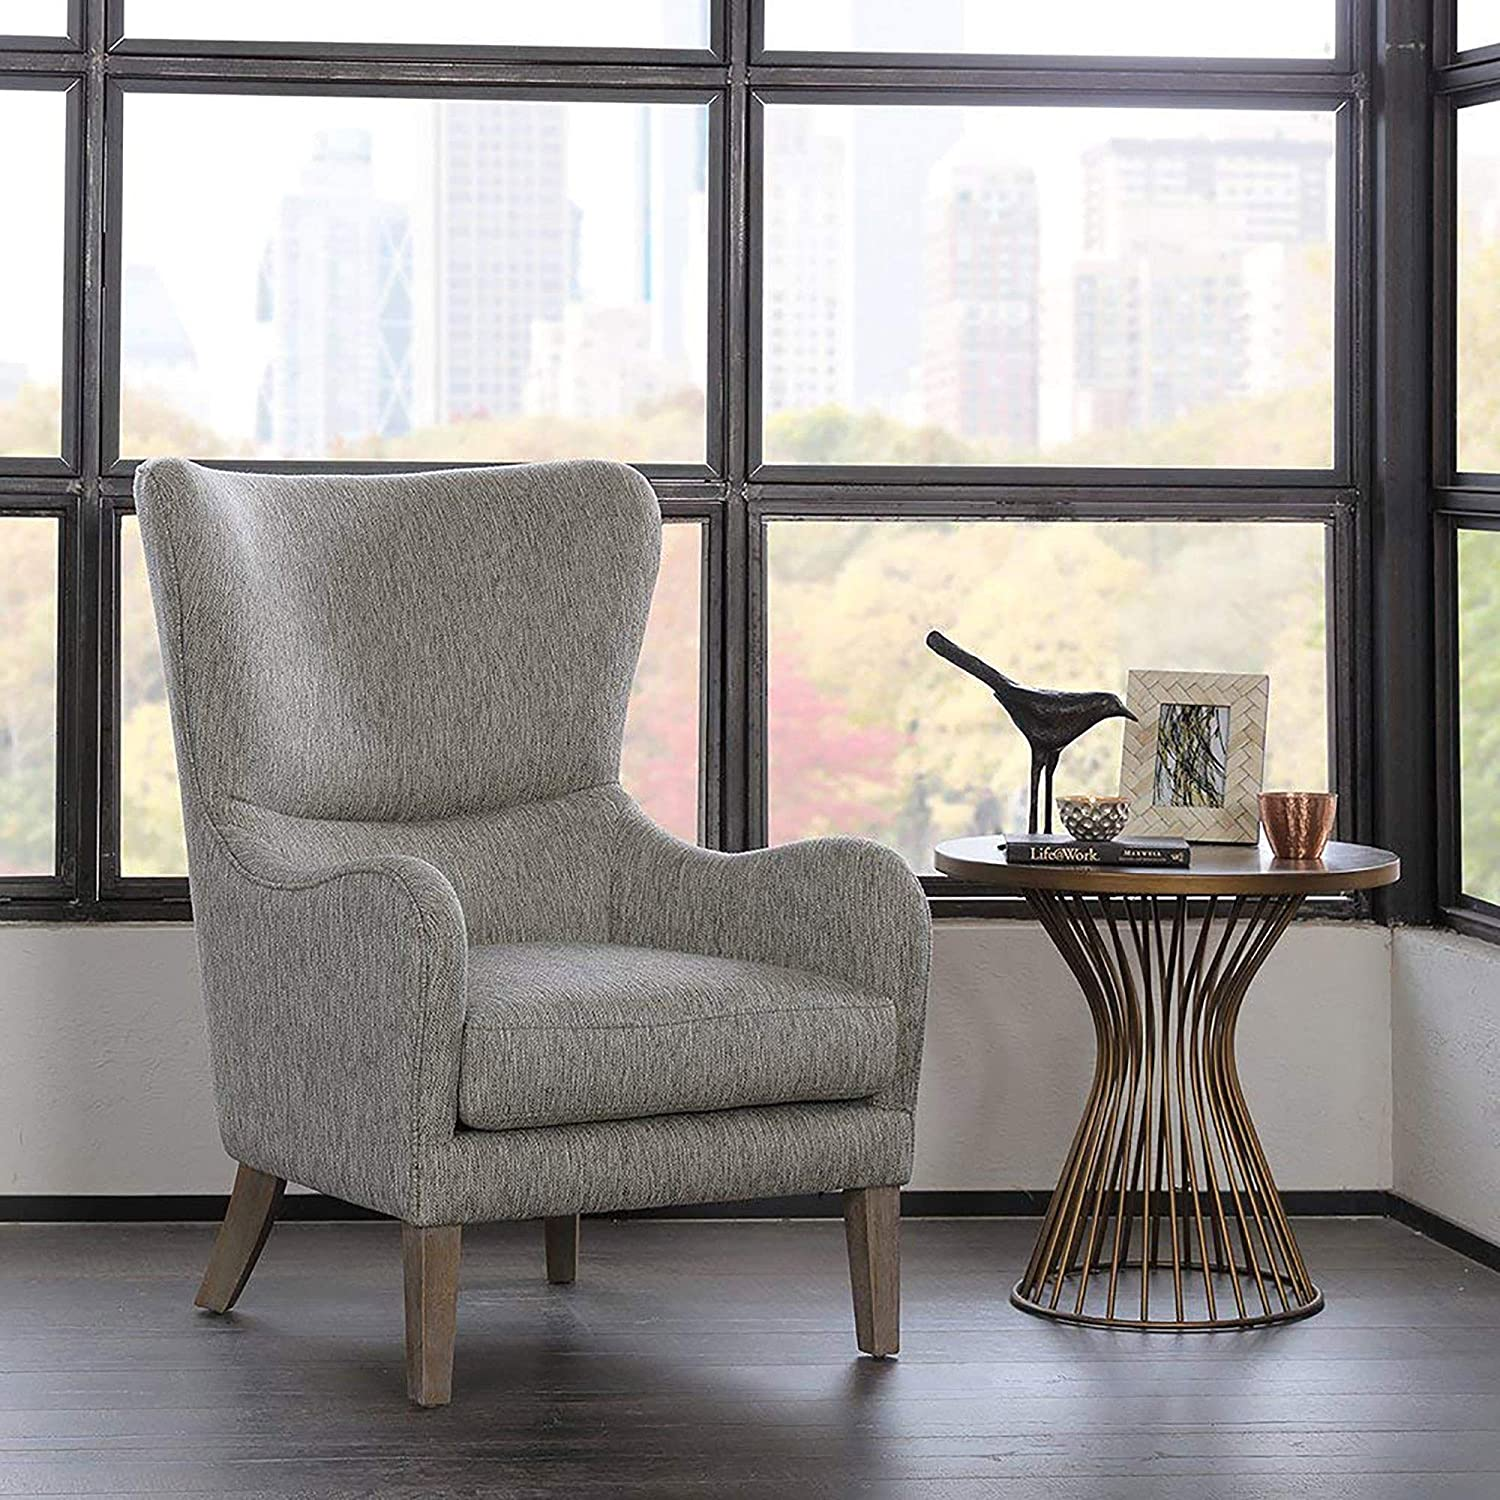 Madison park arianna accent chairs hardwood faux linen living room chairs grey modern contemporary style living room sofa furniture 1 piece swoop